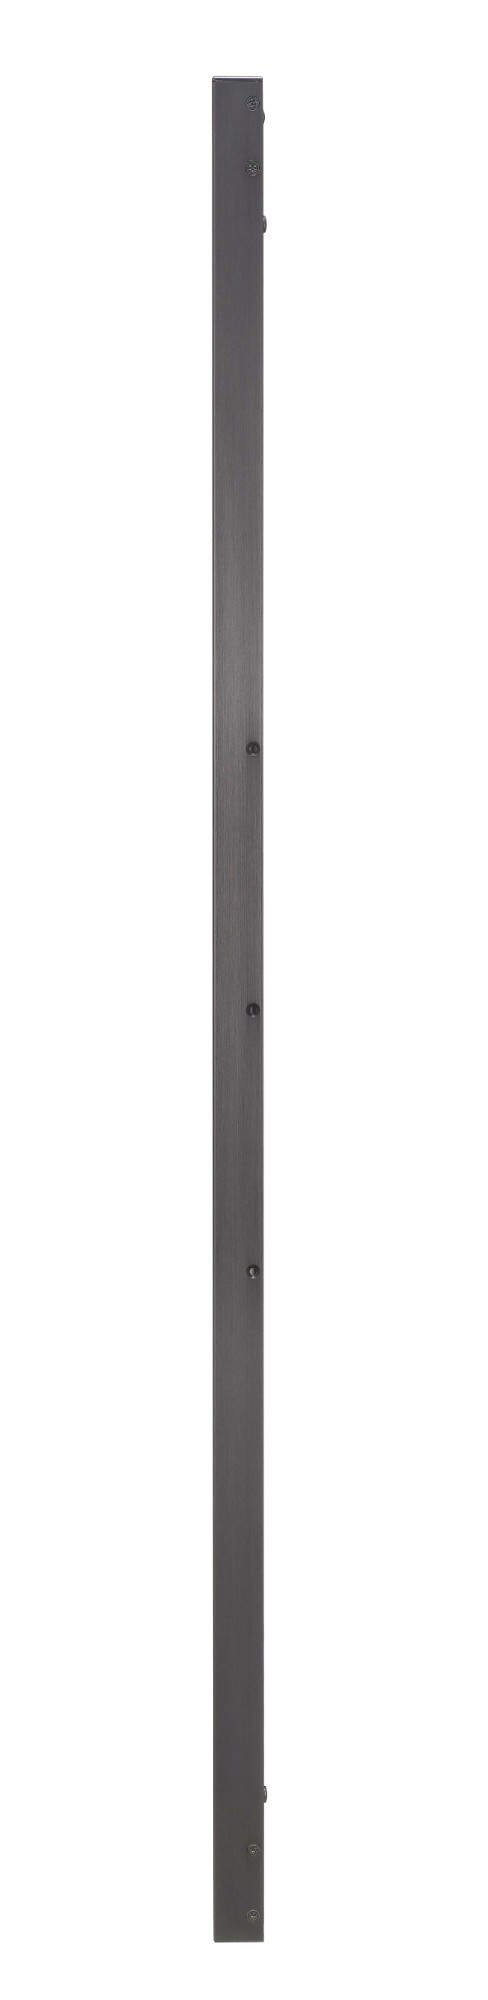 LG KT-T430 touch screen overlay 109 2 cm (43